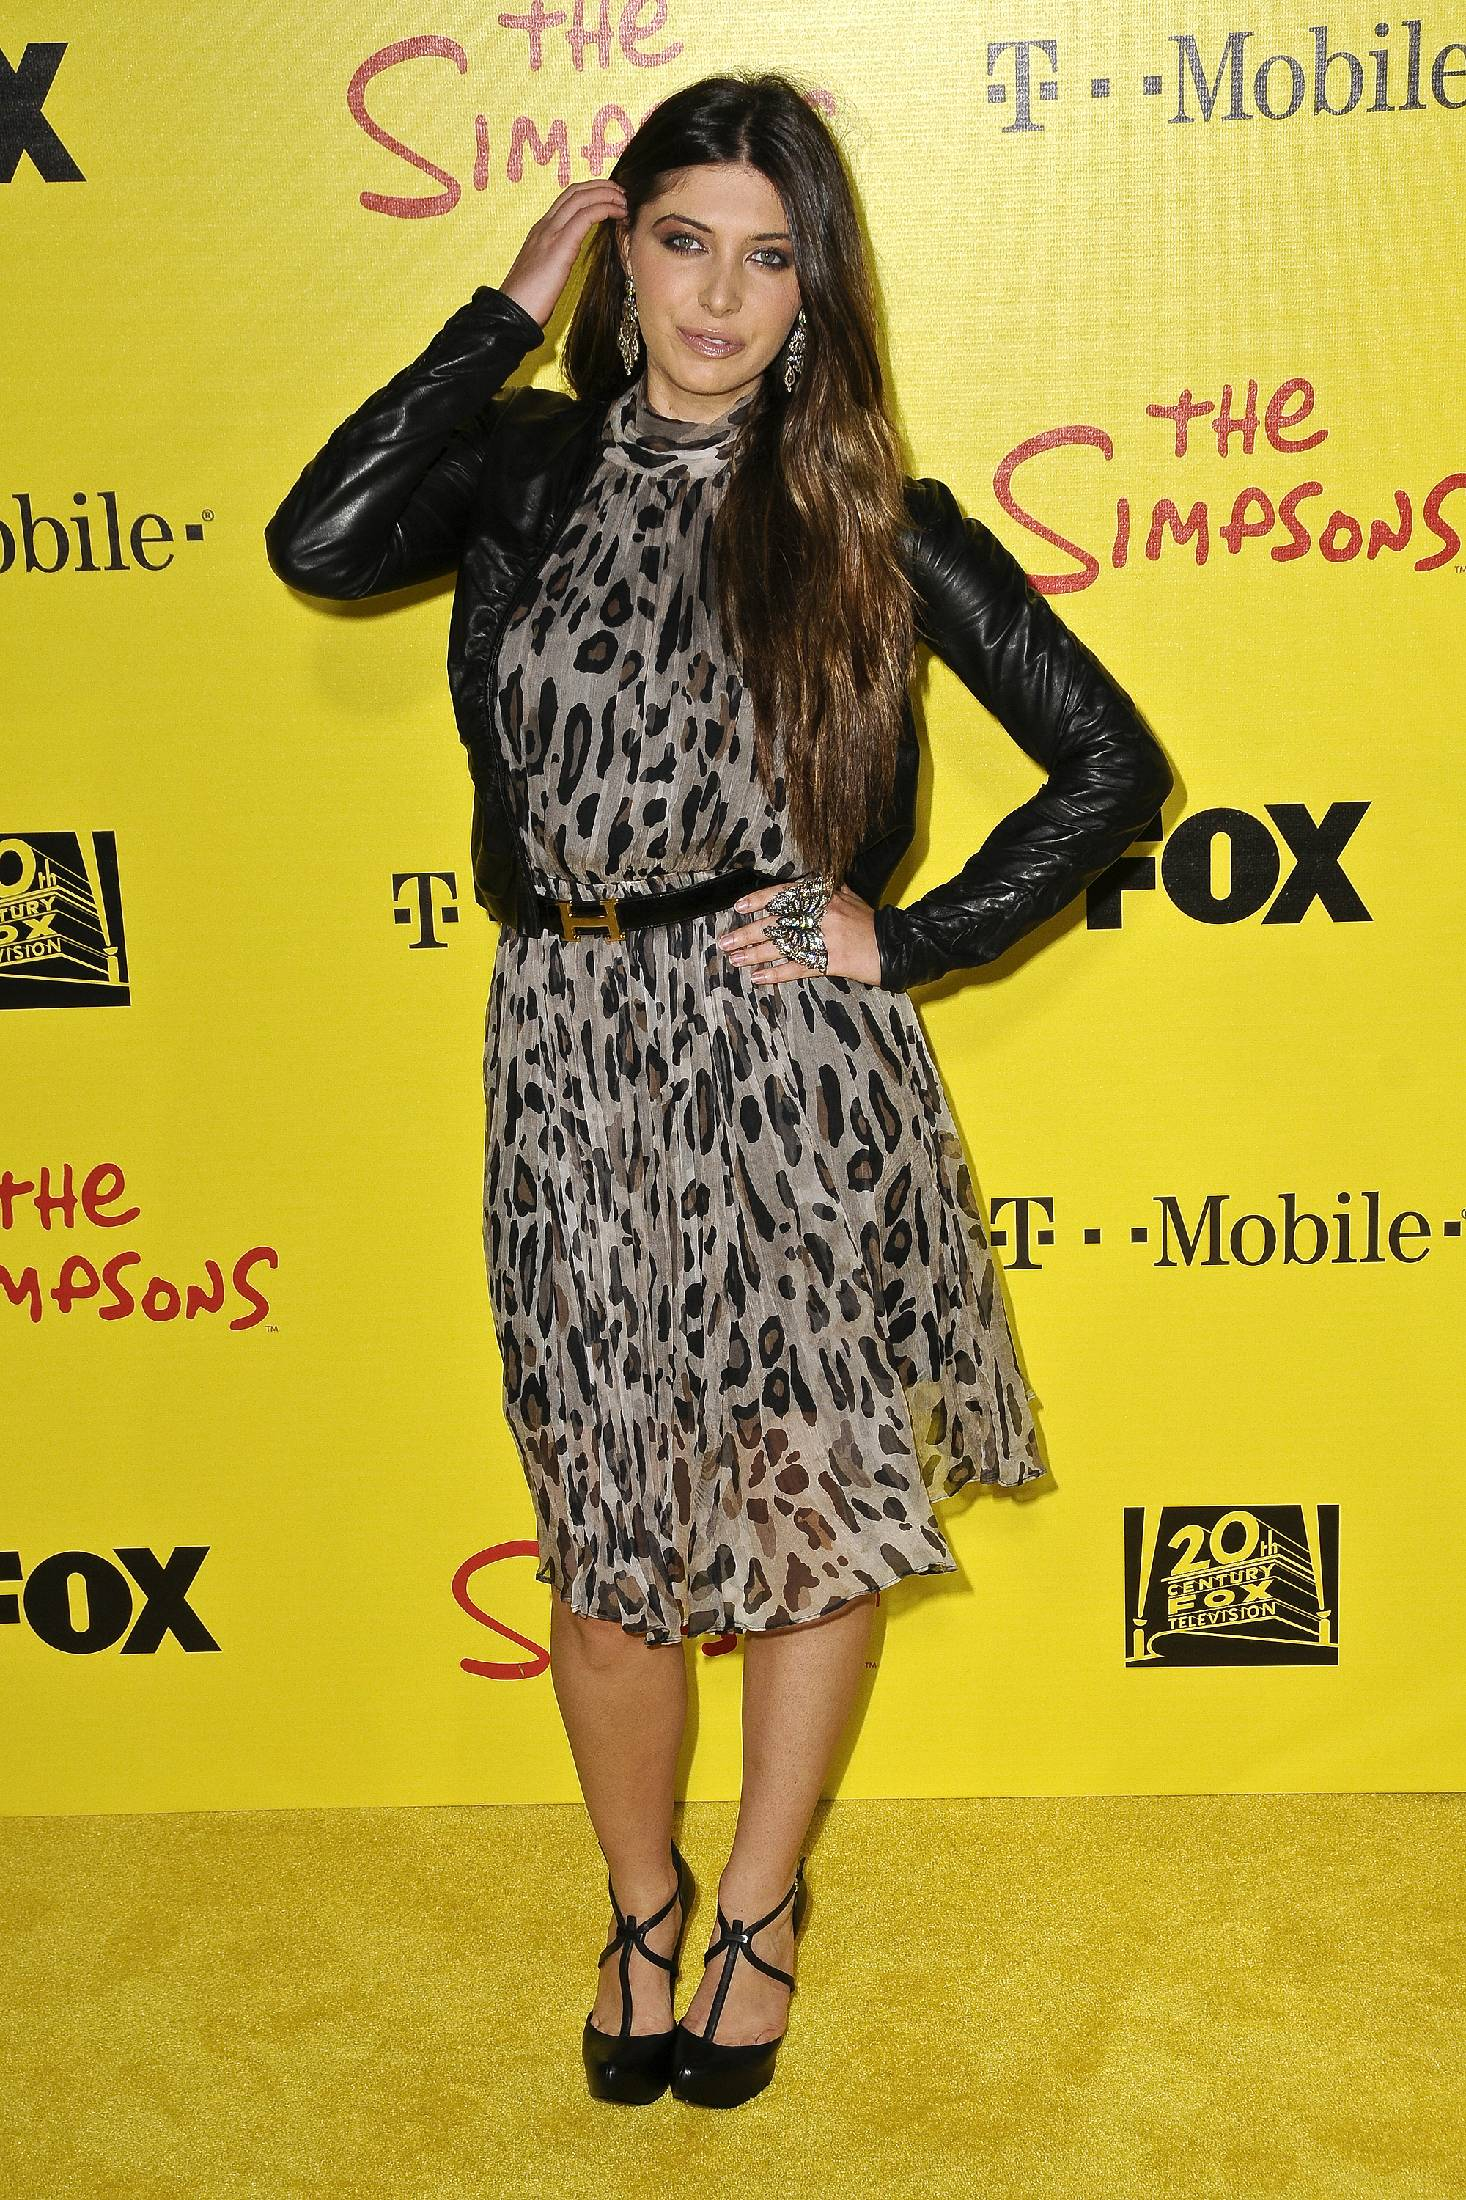 10243_celebrity-paradise.com-The_Elder-Brittny_Gastineau_2009-10-18_-_Simpsons_Treehouse_Of_Horror_and_20th_an_920_122_1097lo.jpg